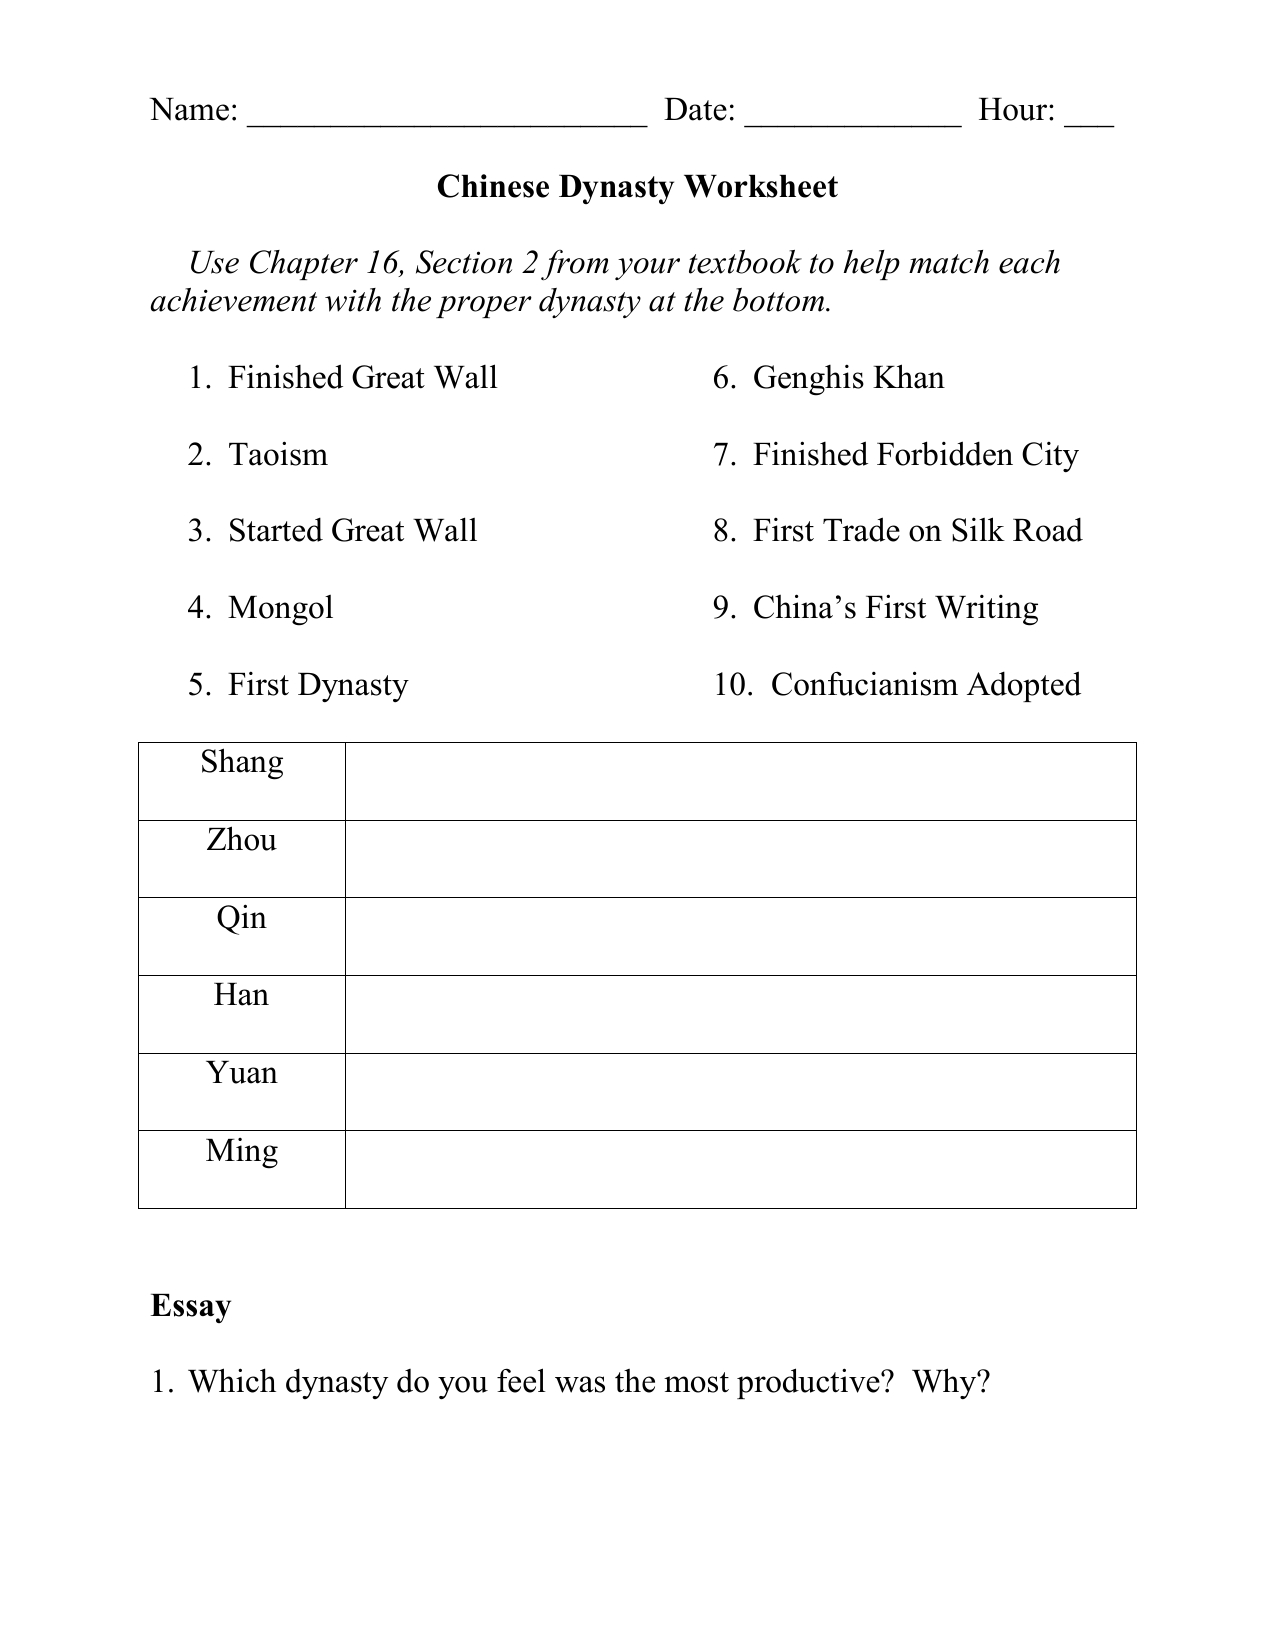 Chinese Dynasty Worksheet